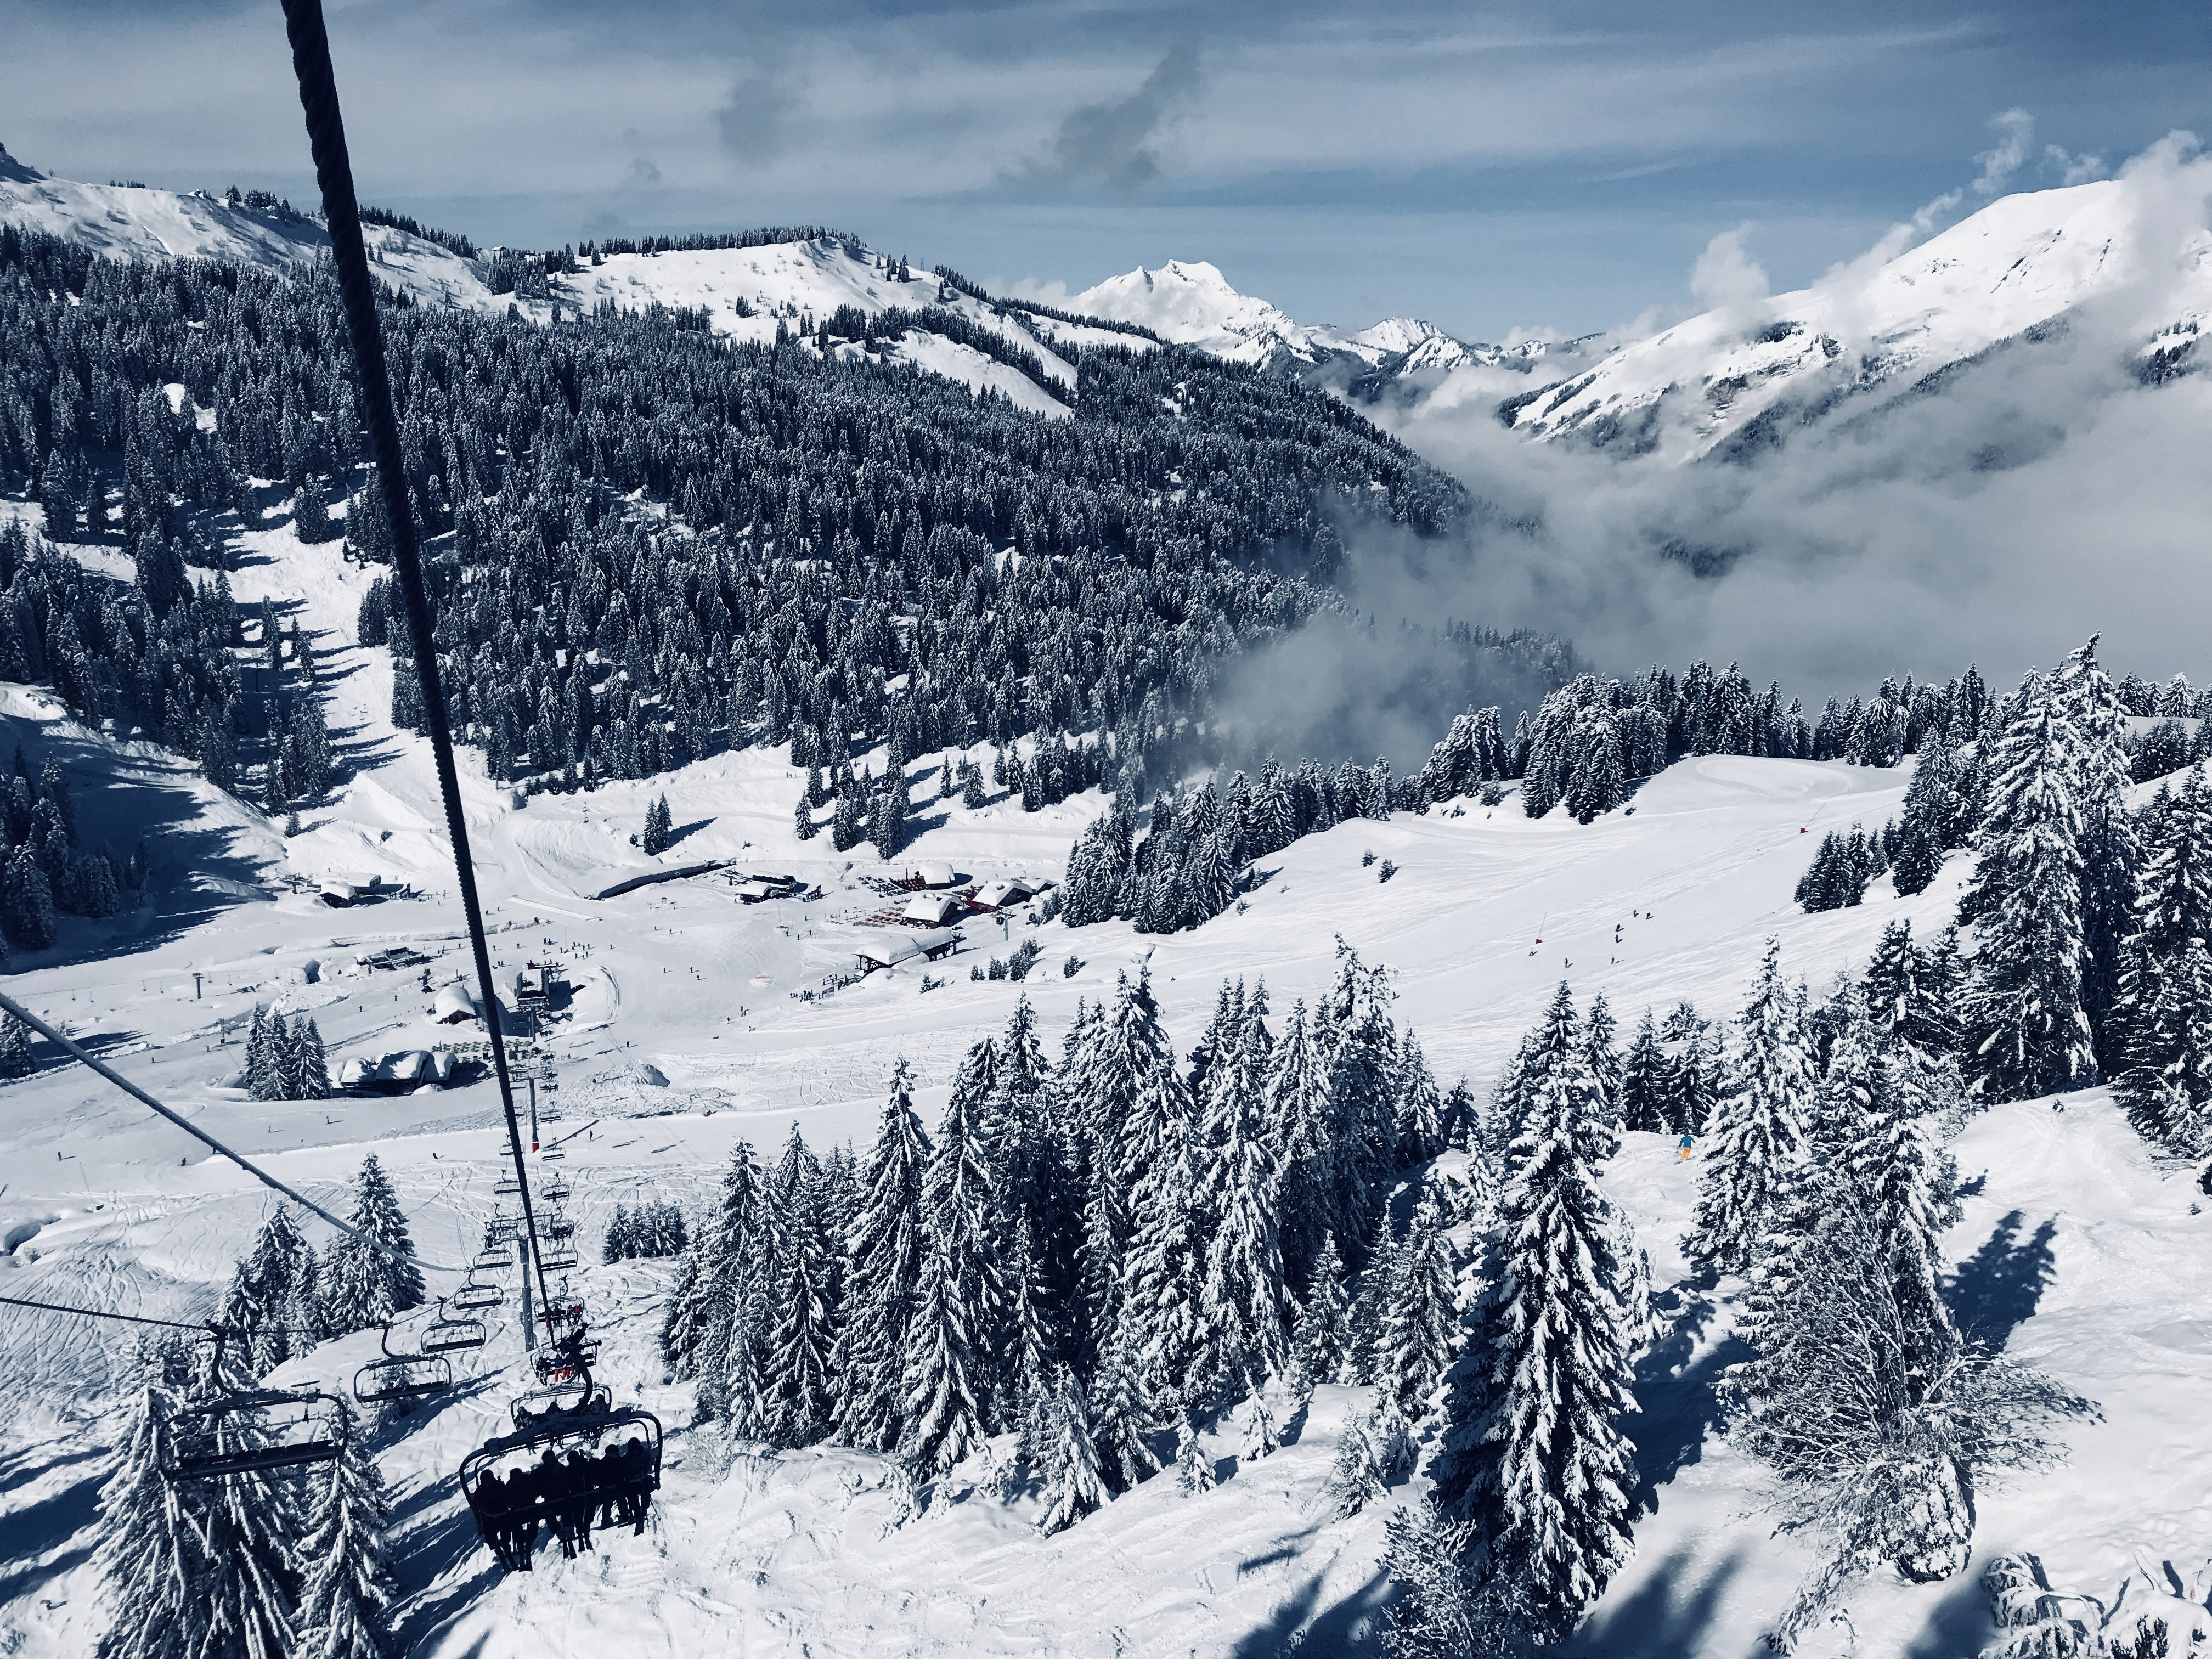 Snow Covered Pine Trees Below Running Cable Car during Day